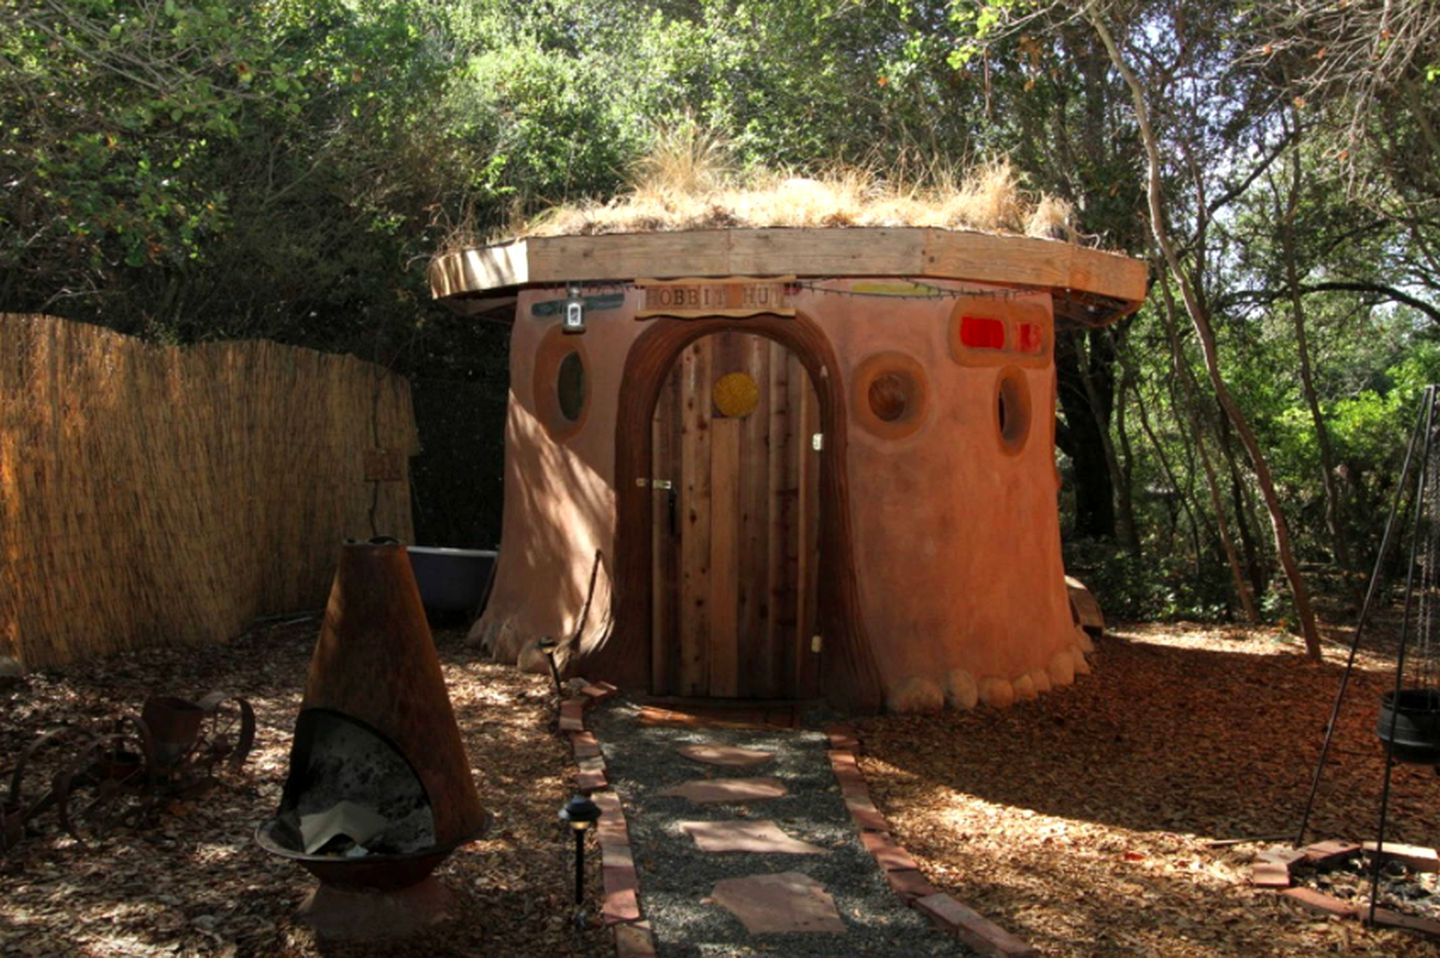 The unique hobbit hut accommodation for getaways near San Francisco